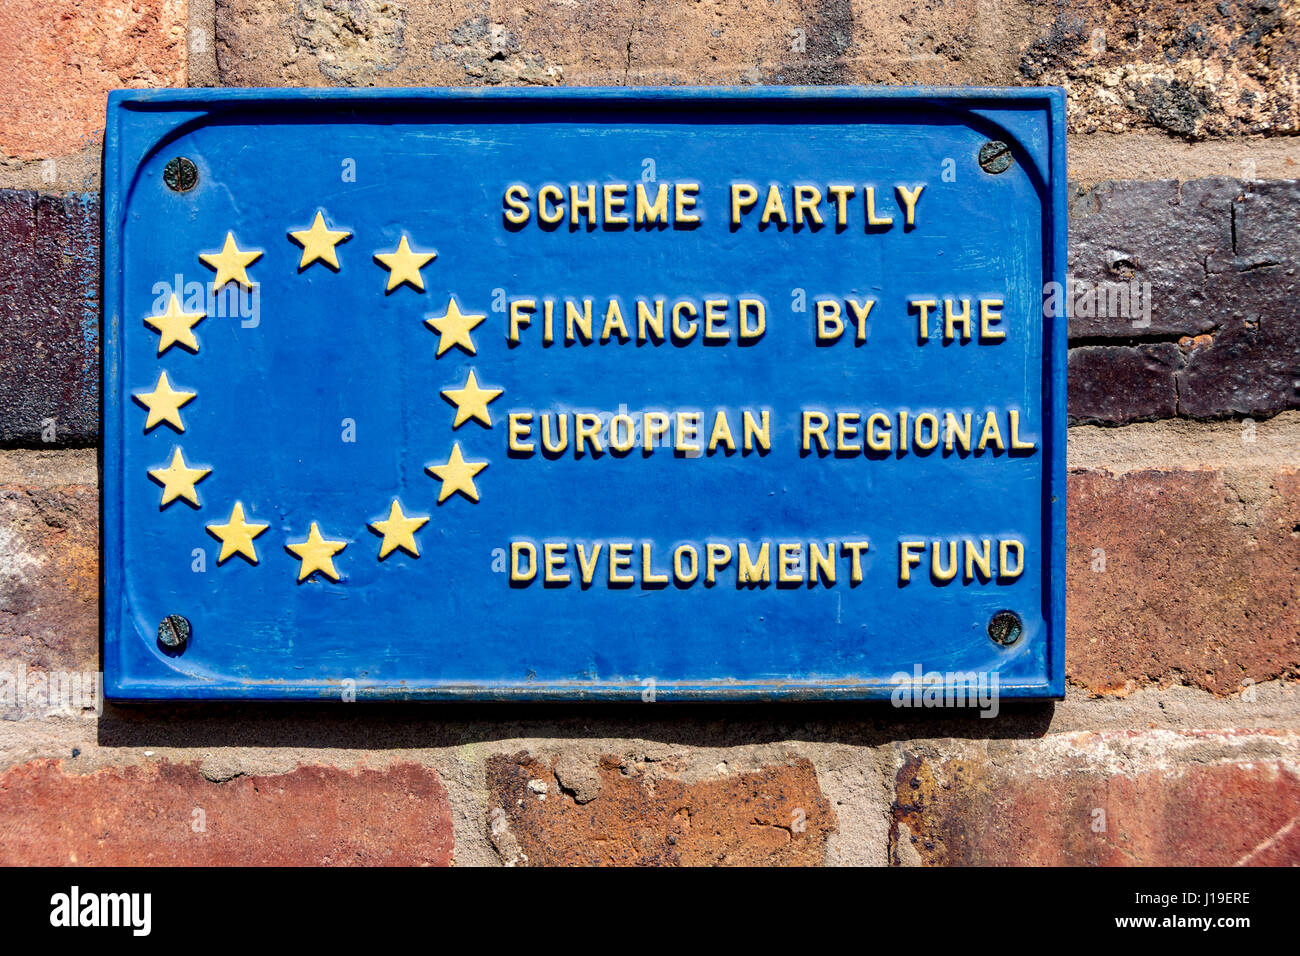 European Regional Development Fund plaque at the Blists Hill Victorian Town, near Madeley, Shropshire, England, - Stock Image